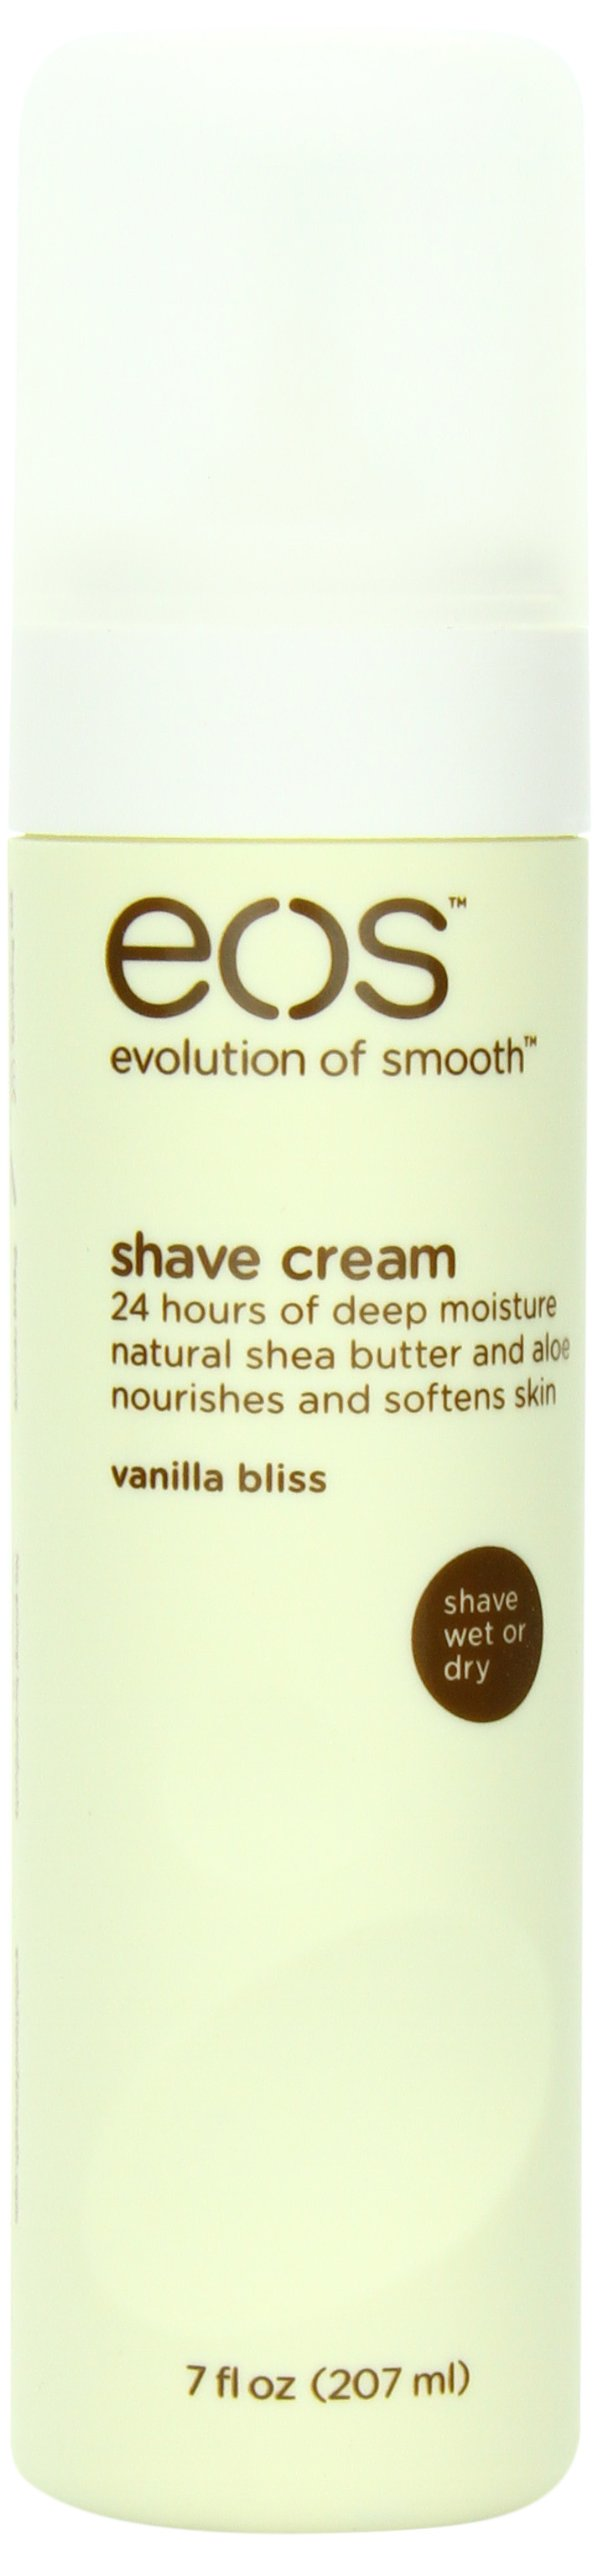 EOS Ultra Moisturizing Shave Cream, Vanilla Bliss, 7-Ounce Bottle (Pack of 3)